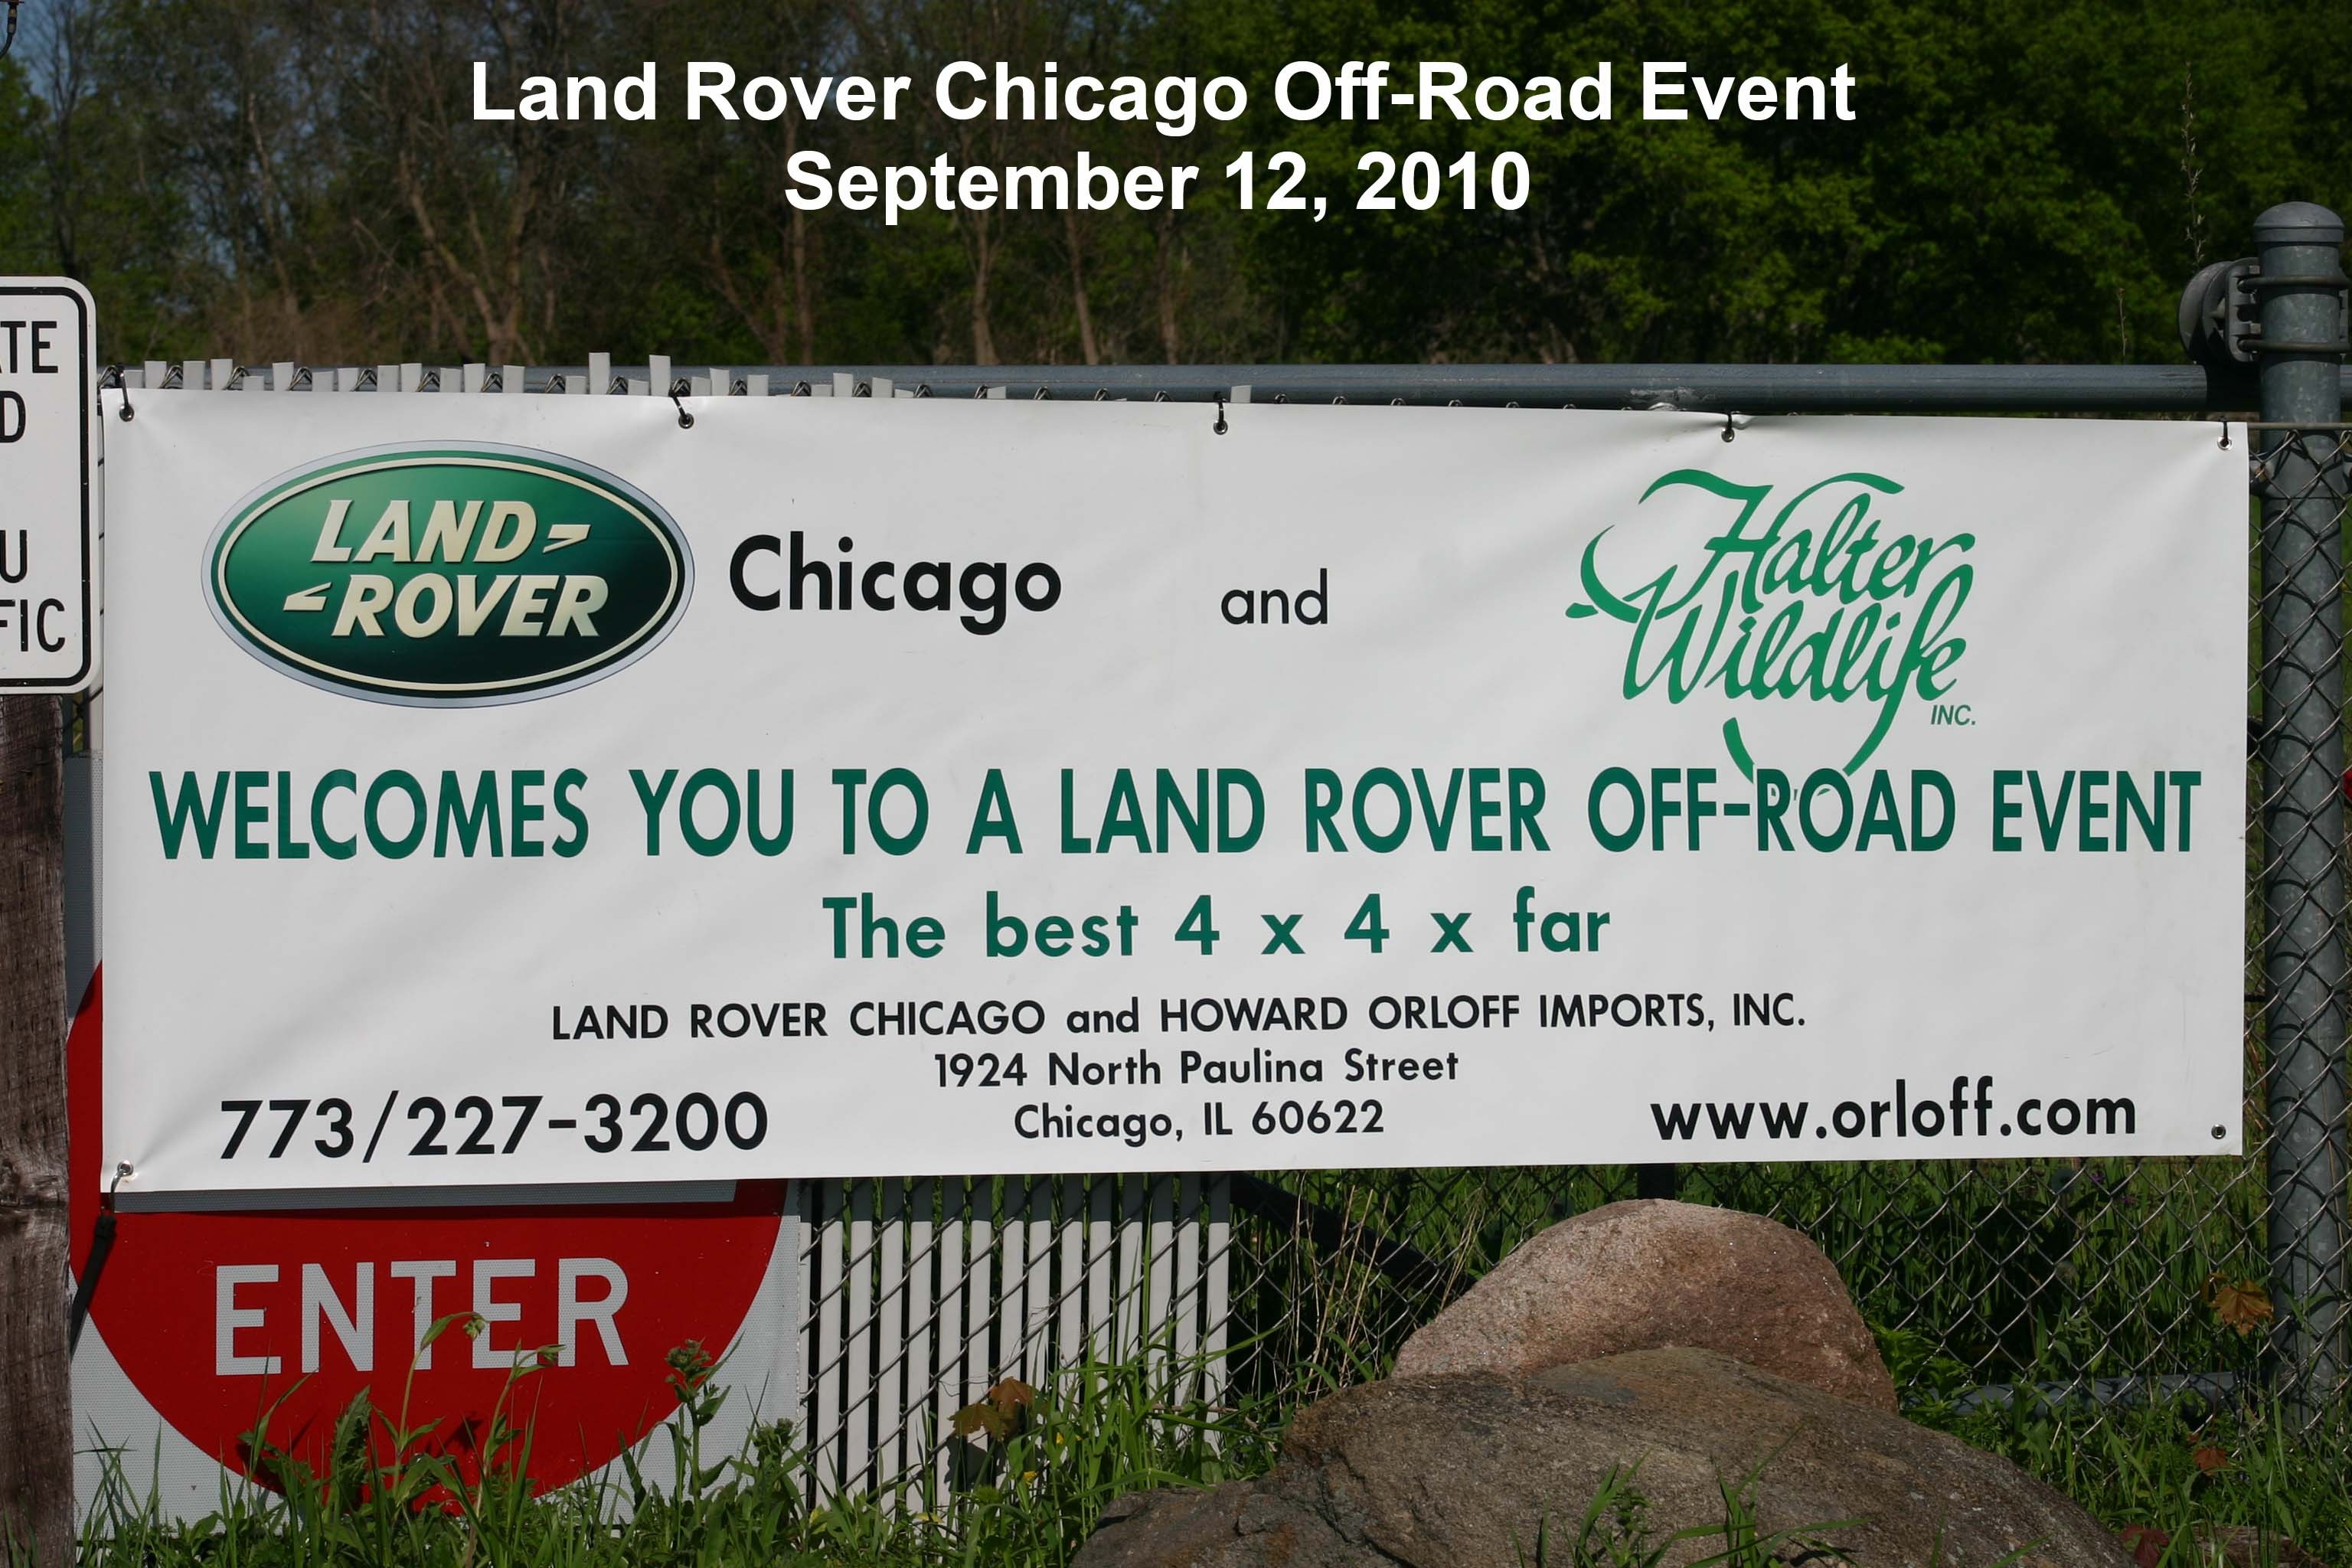 click land rover thumbnail sport range to view in for image sale a landrover chicago larger cars